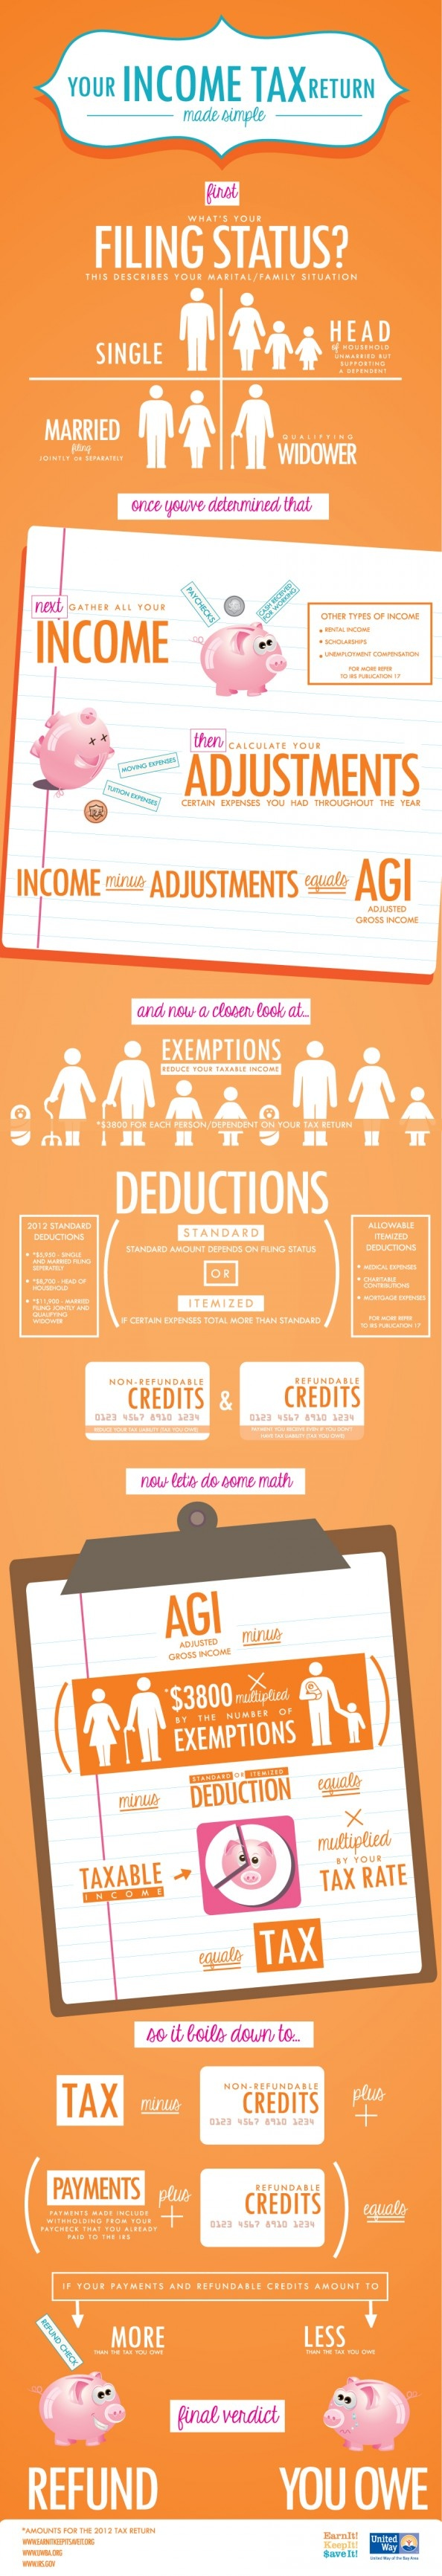 Best 25 income tax ideas on pinterest income tax due date file your income tax return made simple infographic is one of the best infographics created in the how to category check out your income tax return made ccuart Image collections